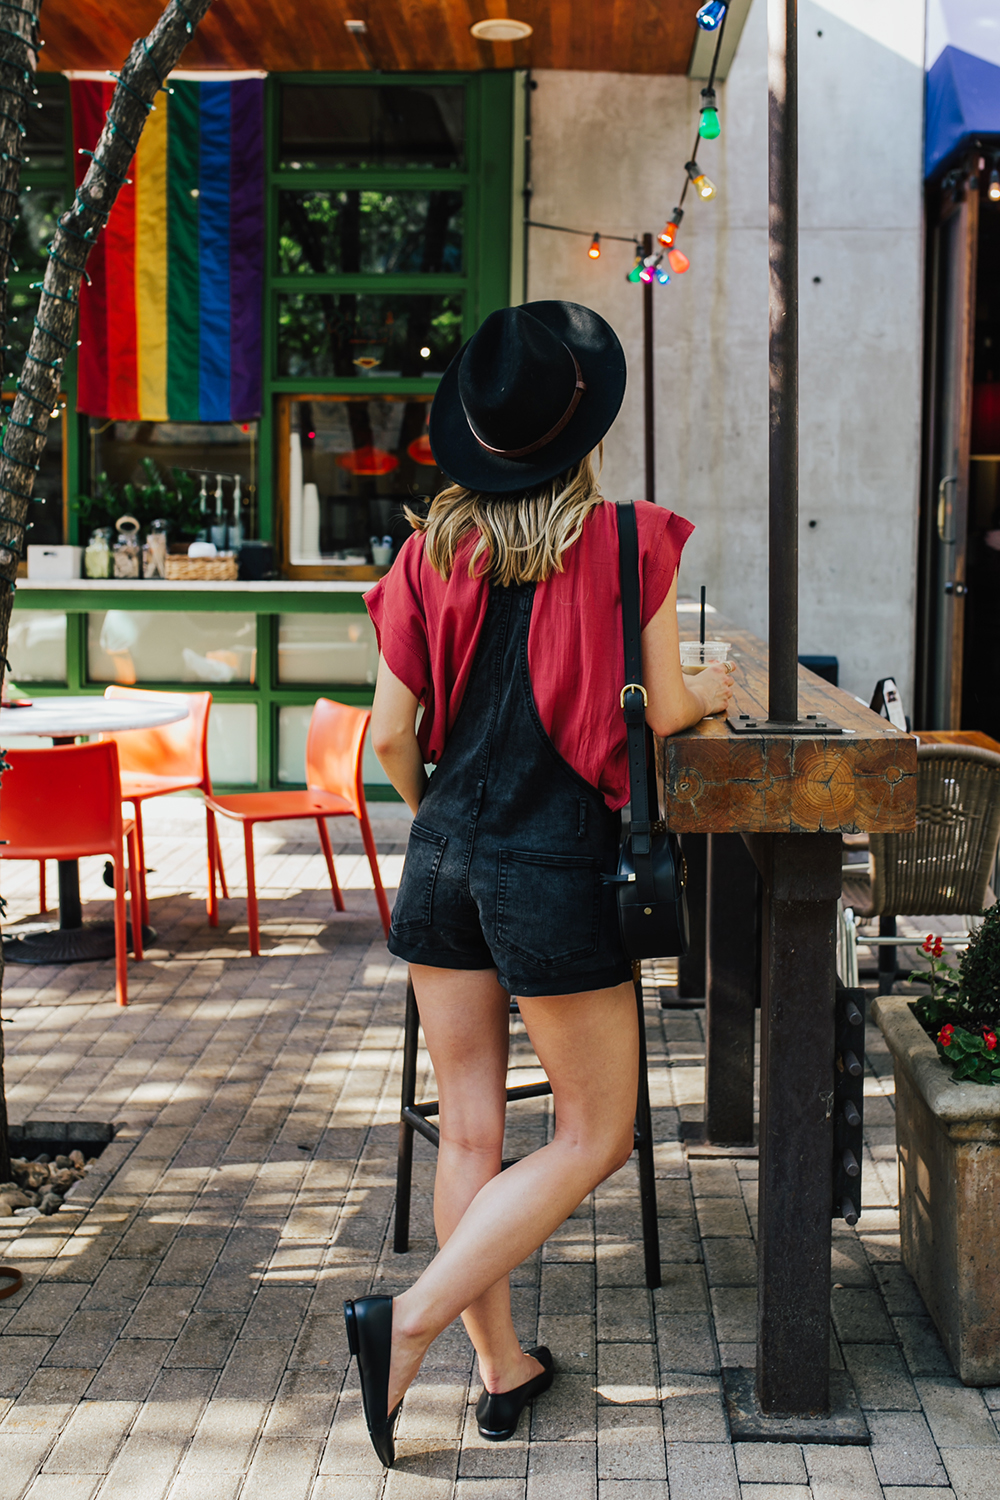 livvyland-blog-olivia-watson-black-short-overalls-abercrombie-everlane-black-pointed-toe-flats-summer-outfit-jos-coffee-second-street-austin-texas-fashion-blogger-5